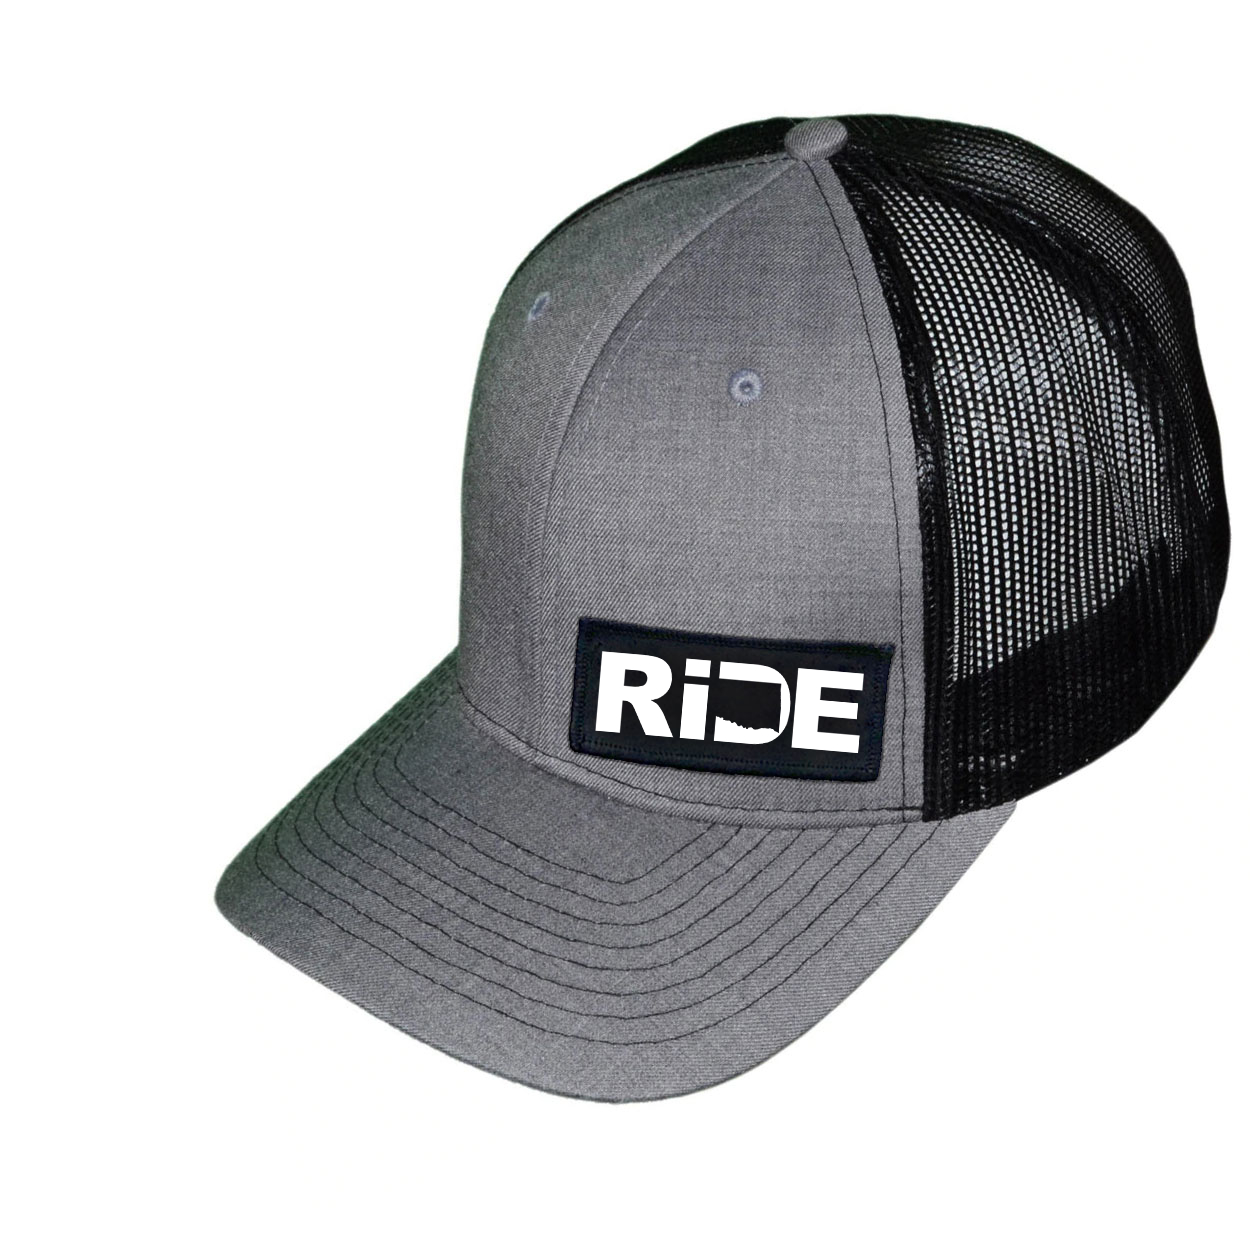 Ride Oklahoma Night Out Woven Patch Snapback Trucker Hat Heather Gray/Black (White Logo)